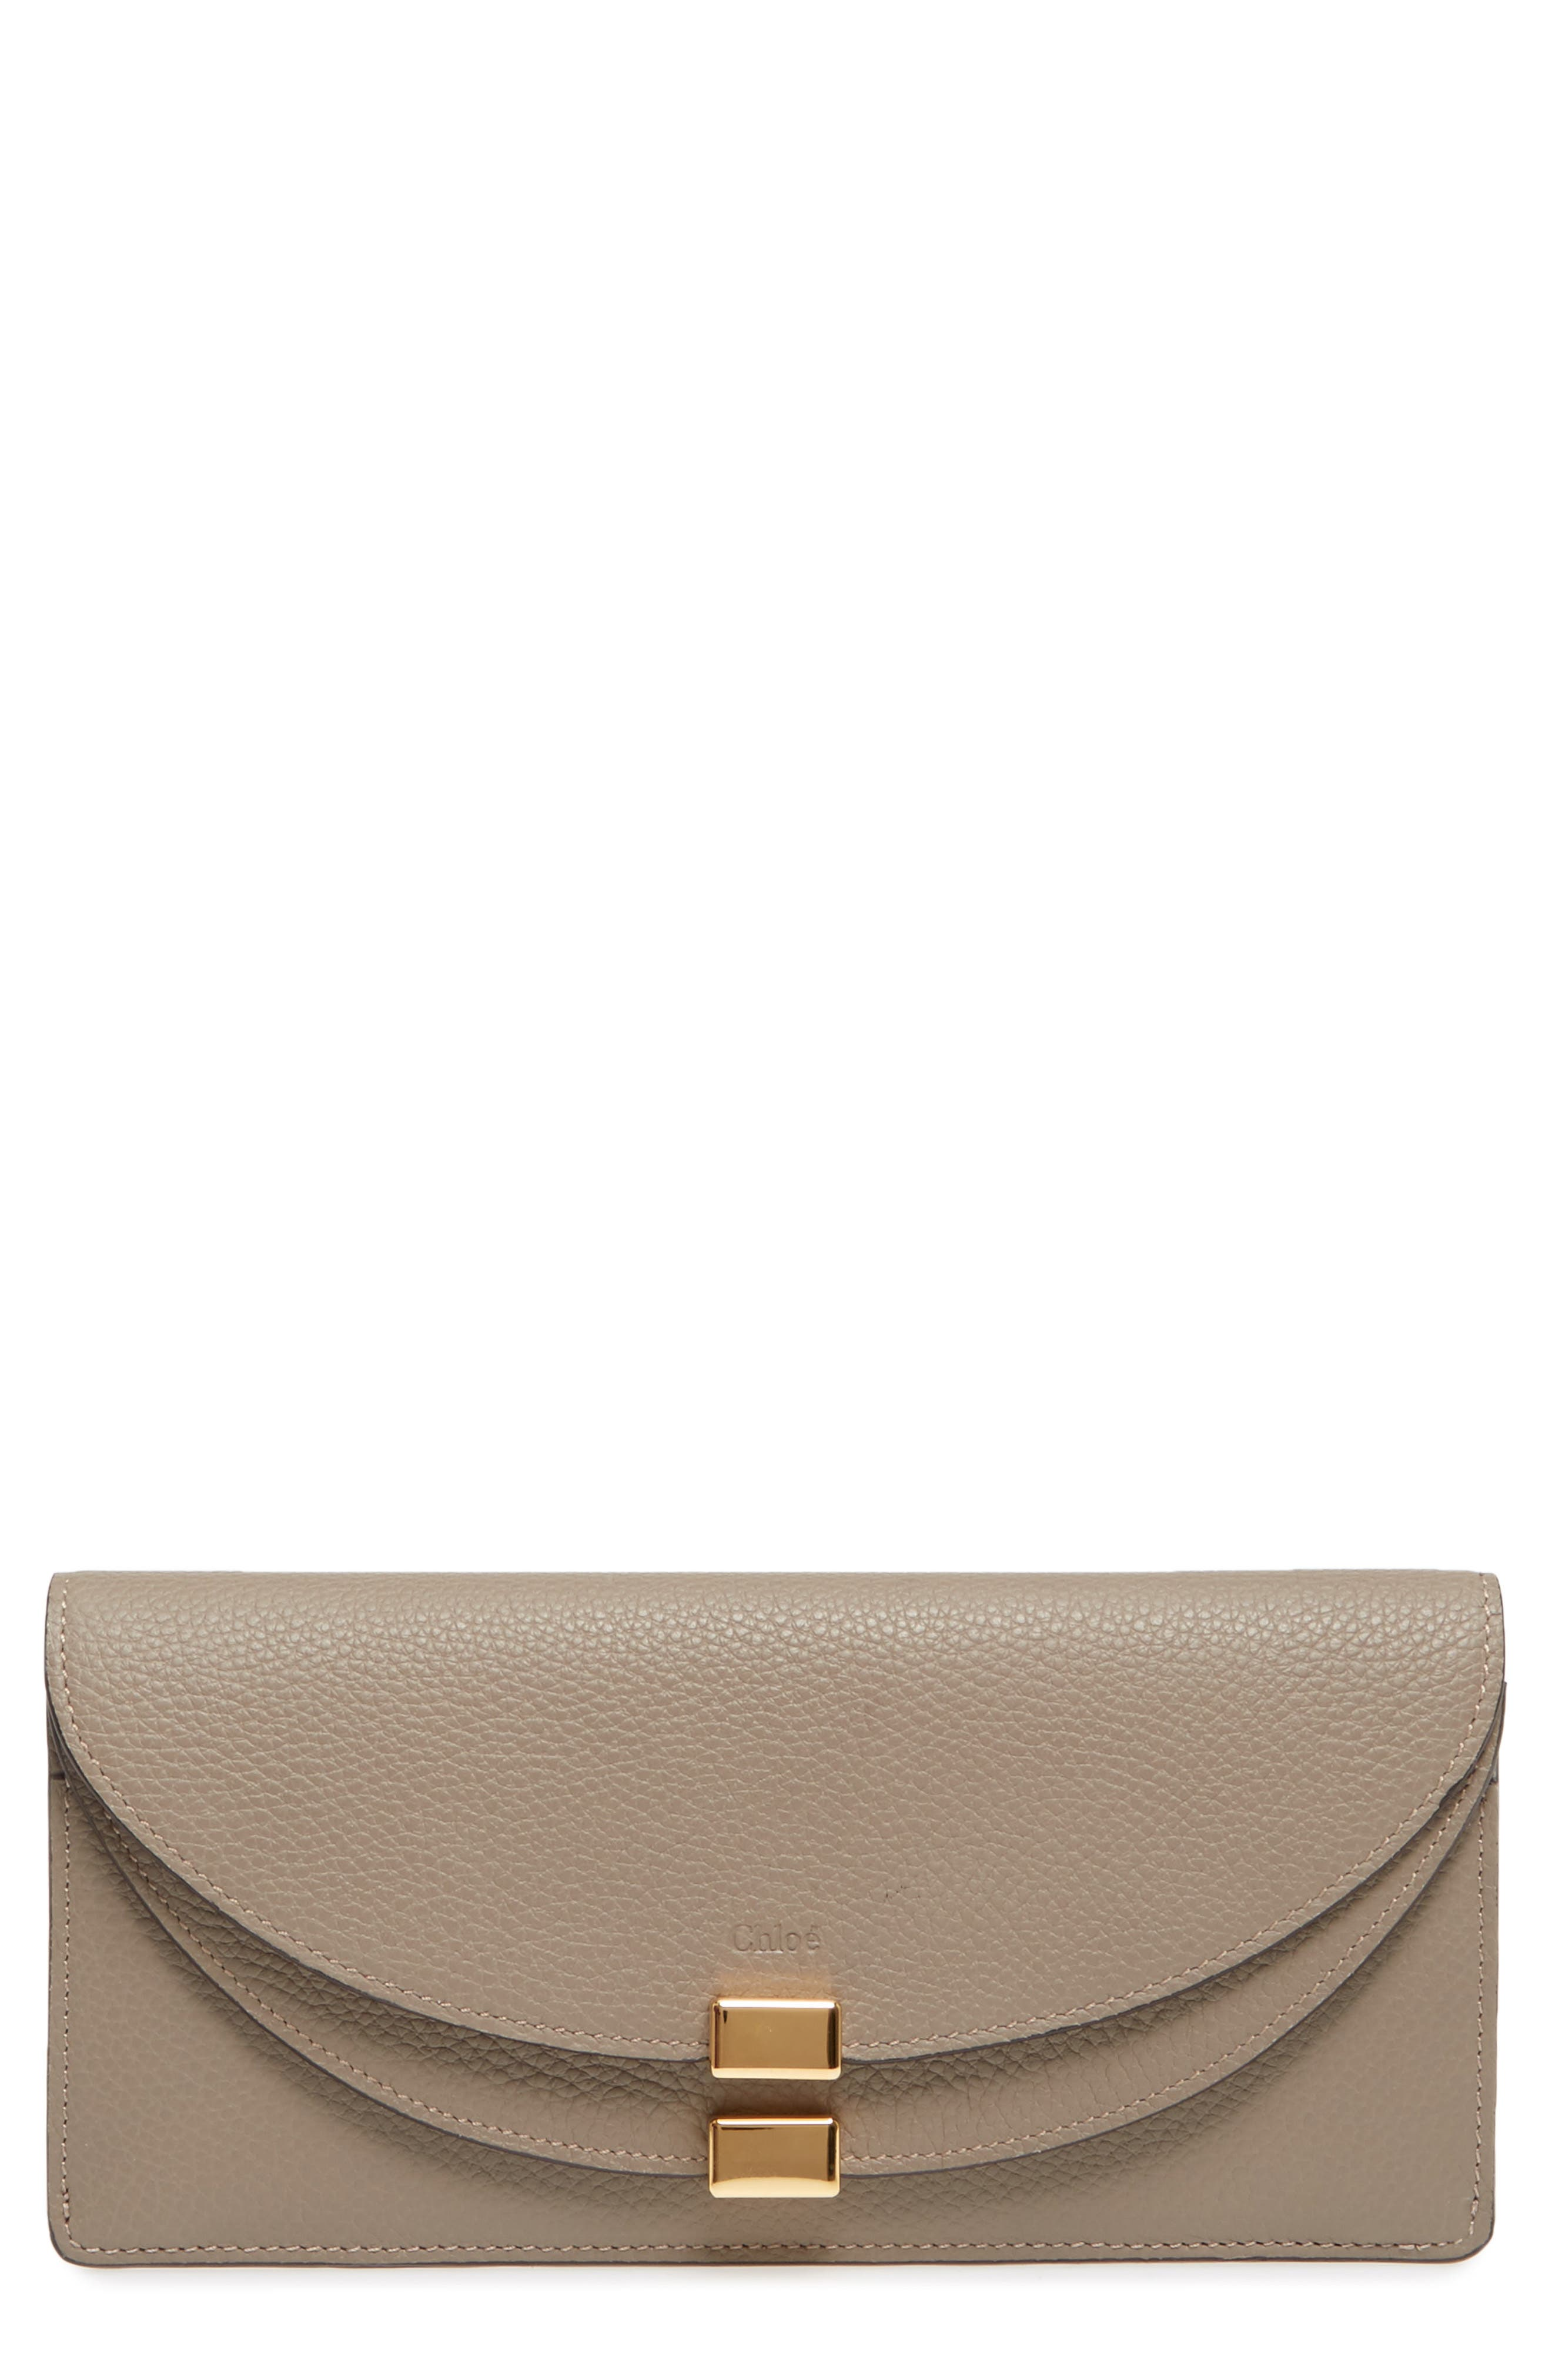 Georgia Continental Leather Wallet,                             Main thumbnail 1, color,                             020